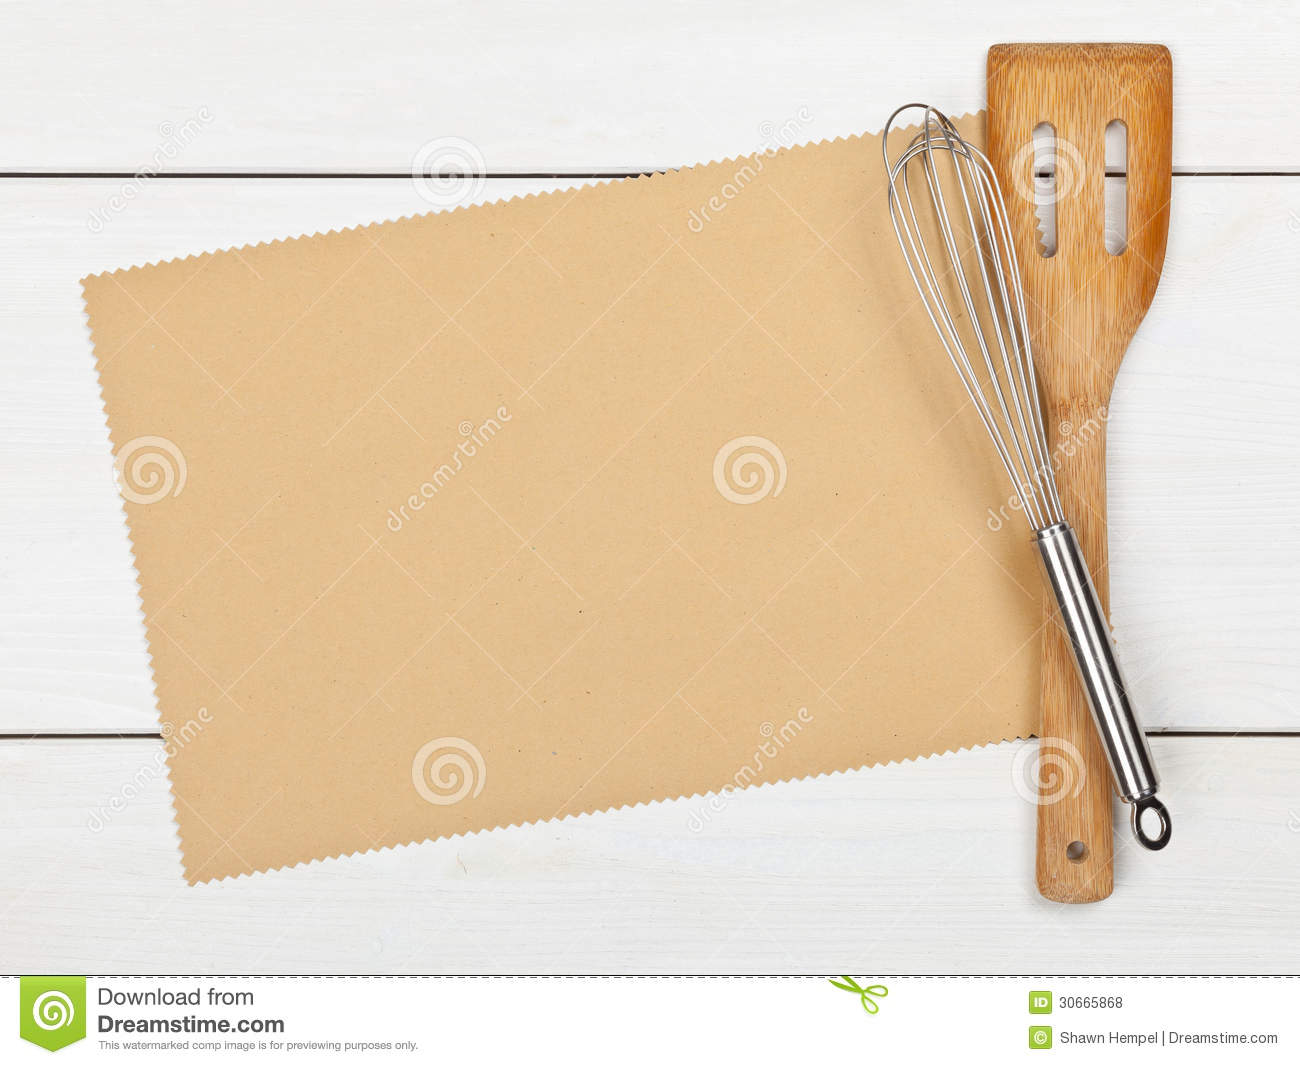 Empty paper for recipe with cooking utensils on kitchen table.